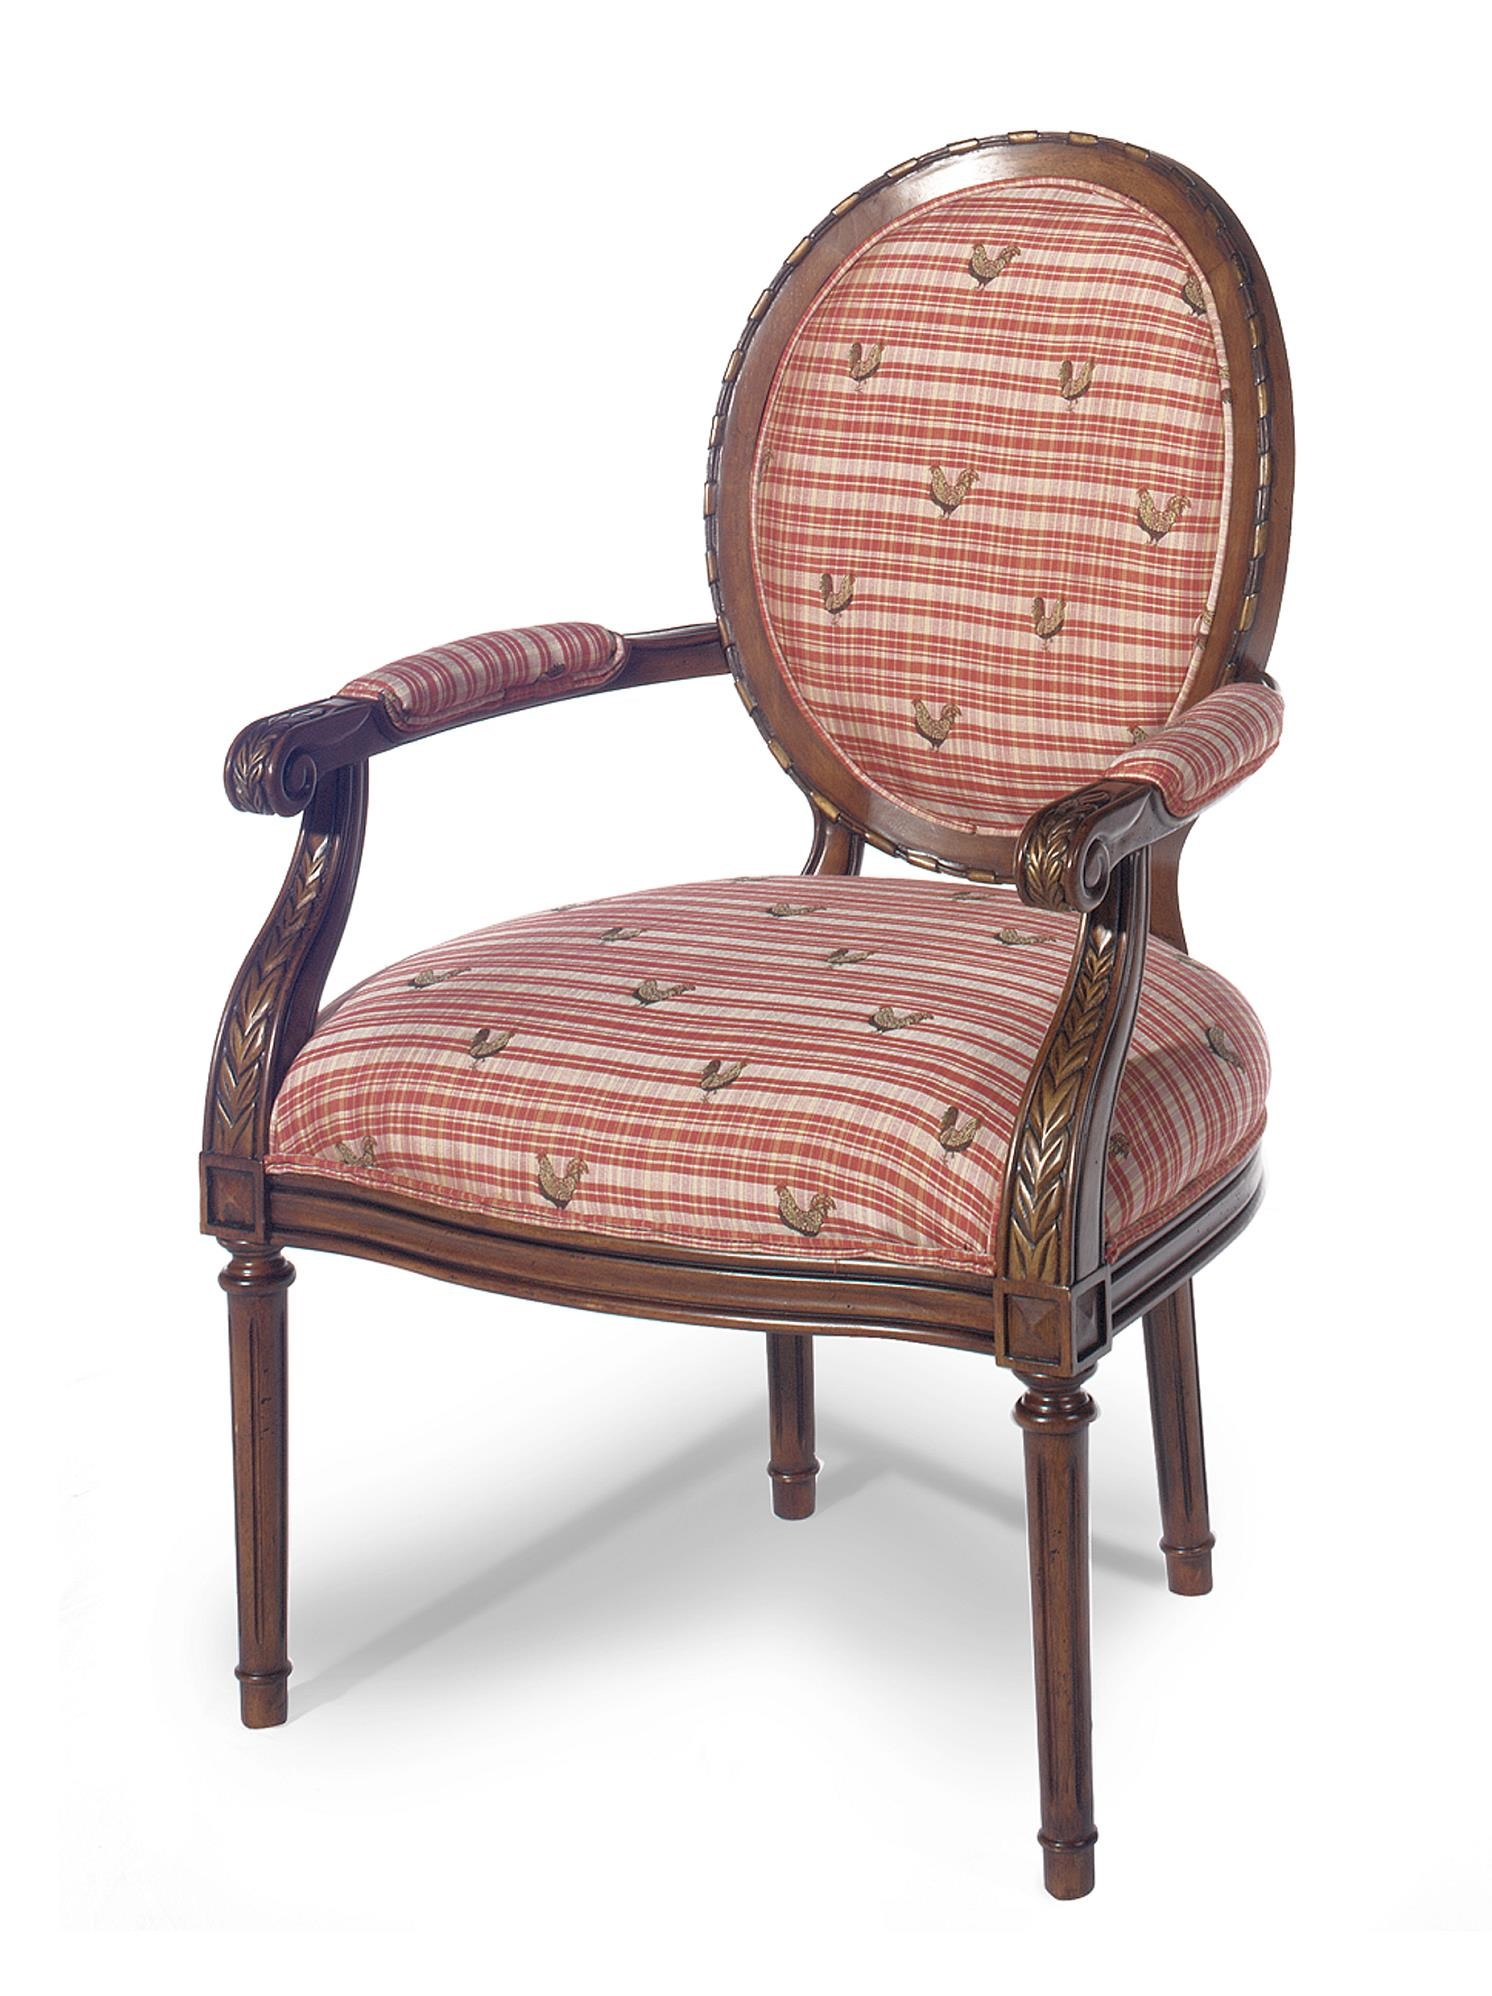 Paula Deen By Craftmaster Paula Deen Upholstered Accents Oval Back Exposed  Wood Chair